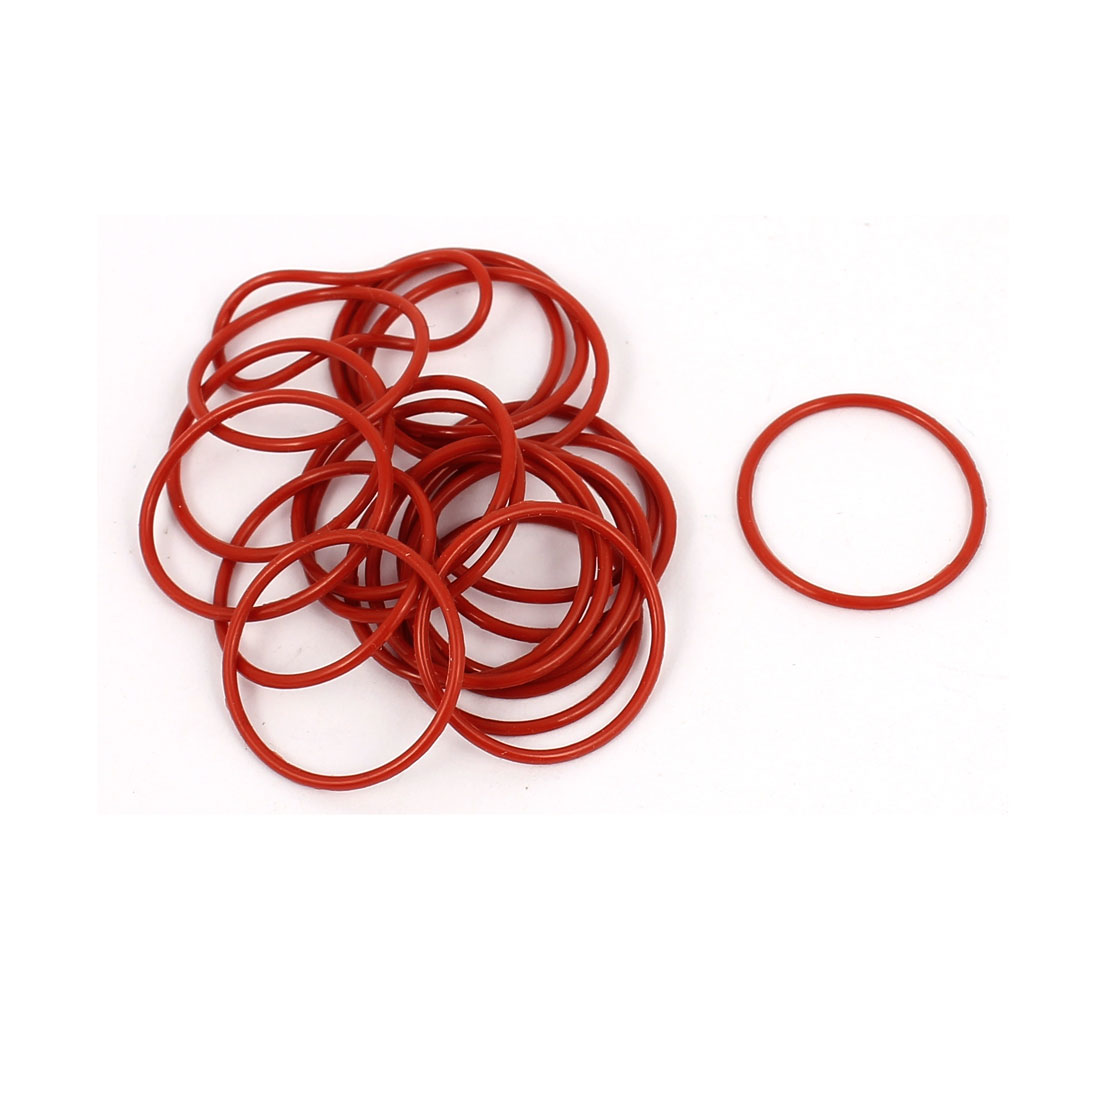 20Pcs 18mm x 1mm Rubber O-rings NBR Heat Resistant Sealing Ring Grommets Red